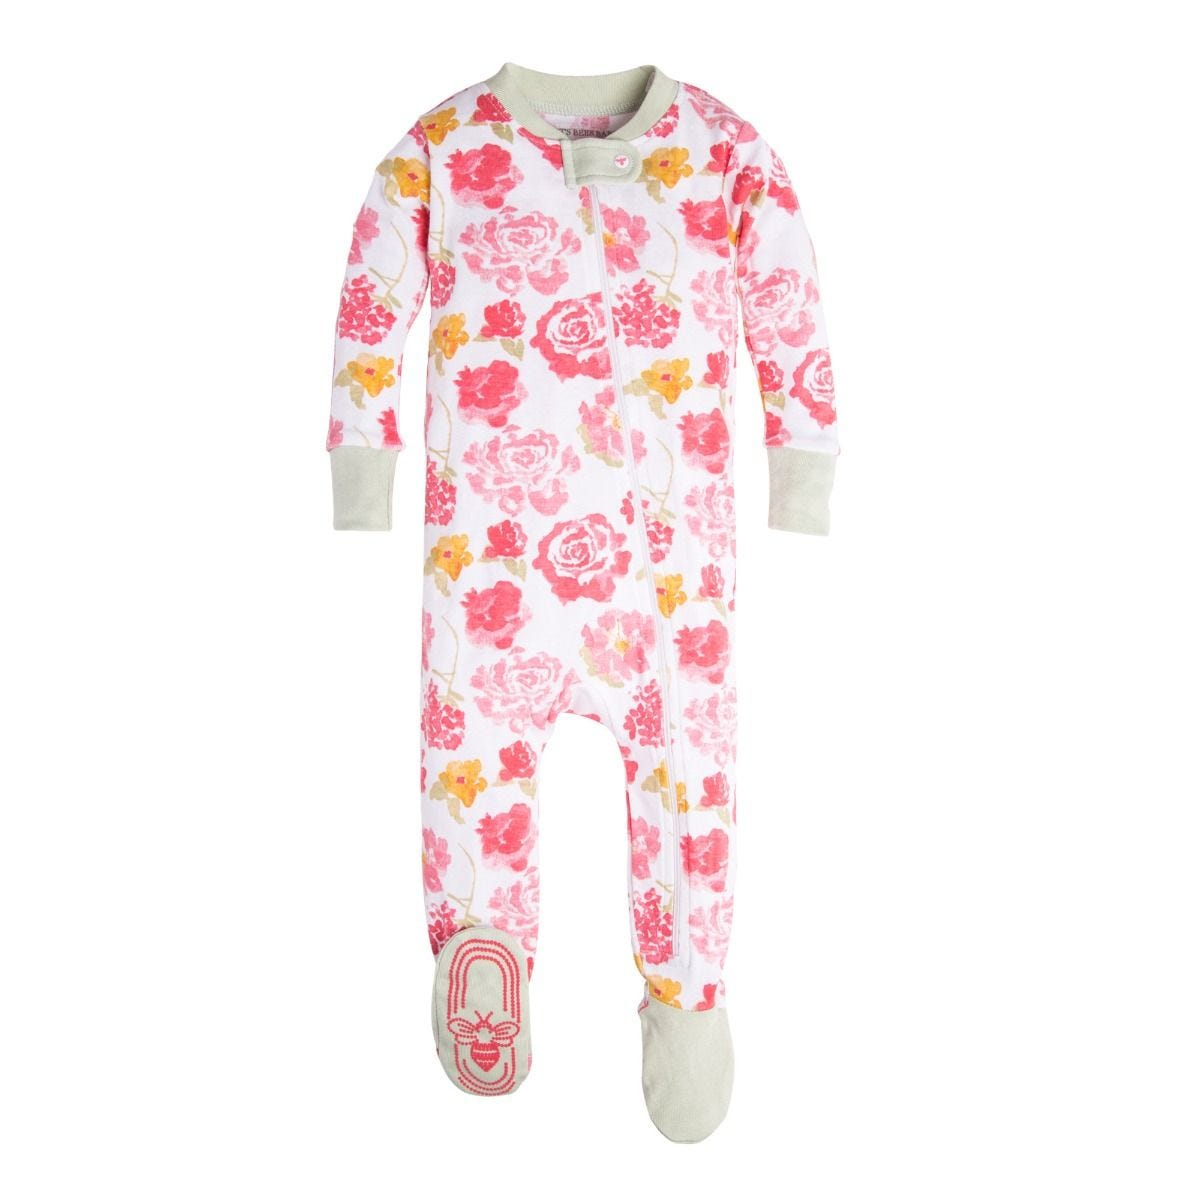 e98bbfa7418d Rosy Spring Organic Baby Zip Up Footed Pajamas